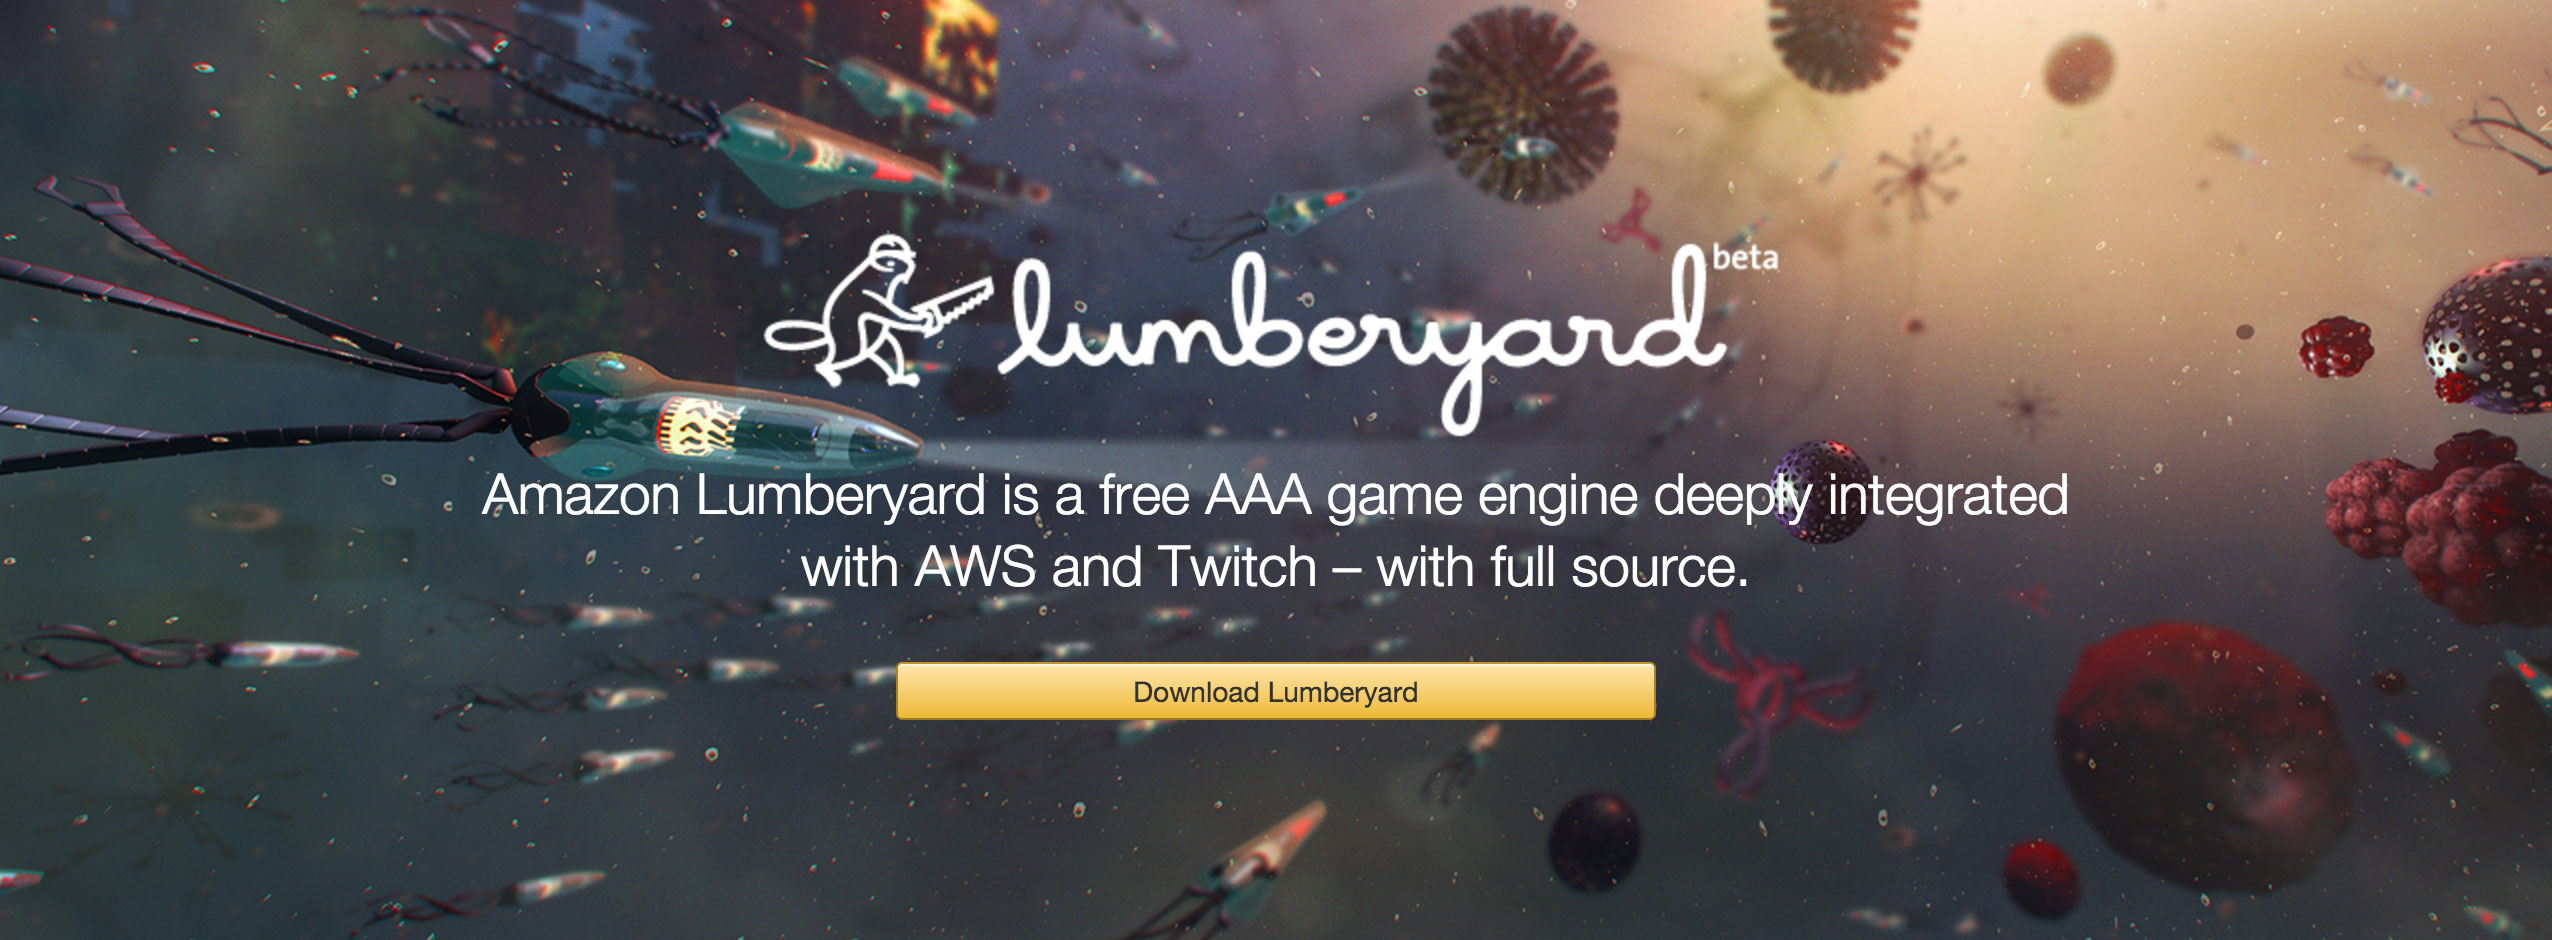 amazon-lumberyard